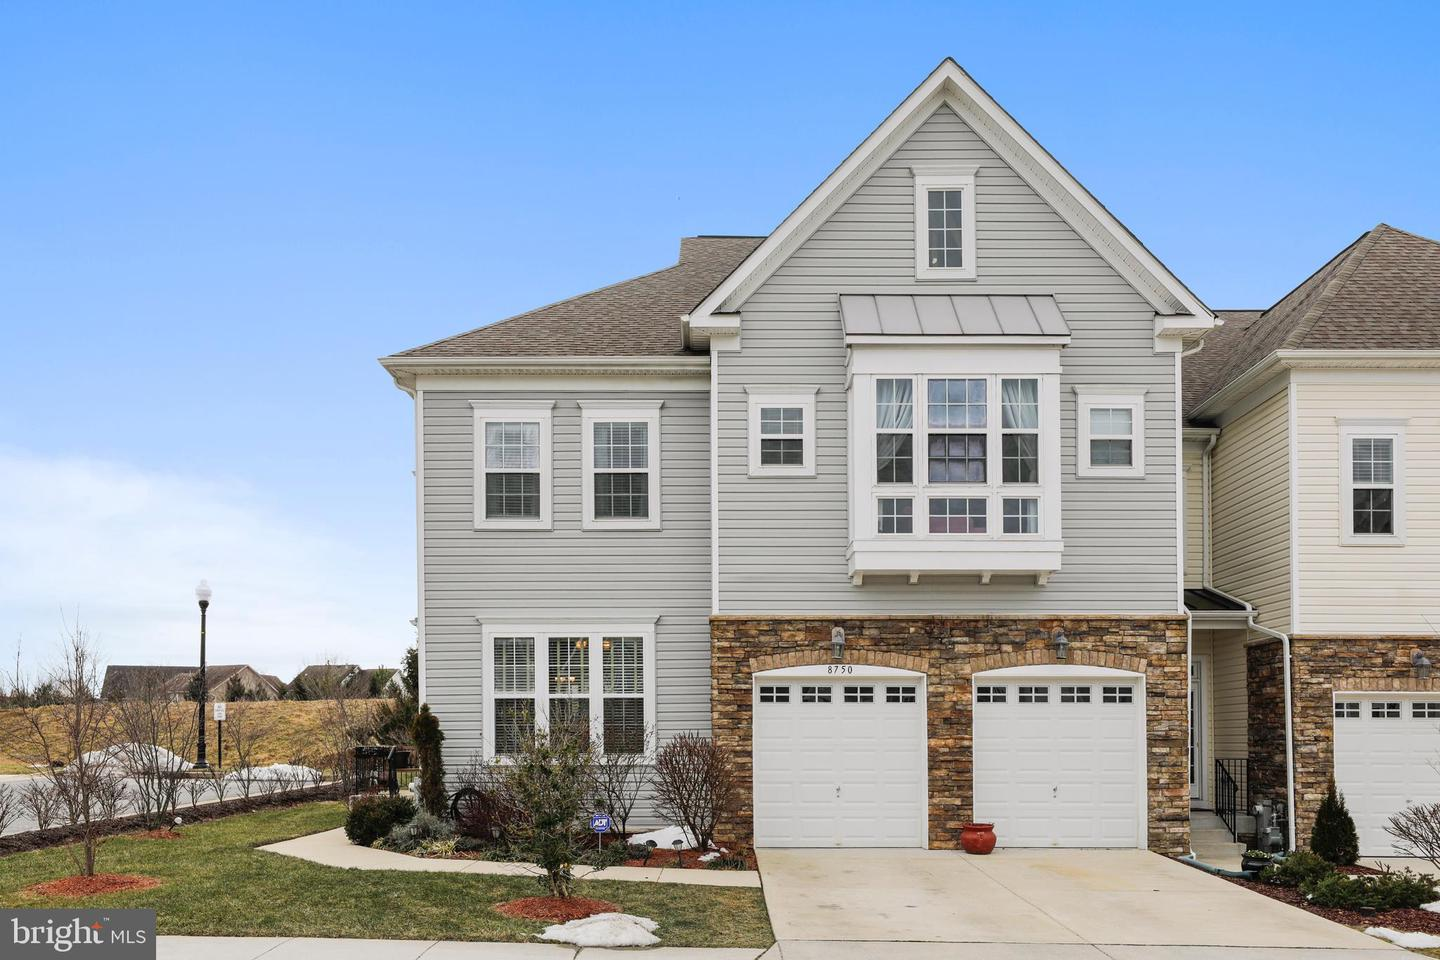 8750 POLISHED PEBBLE WAY, LAUREL, Maryland